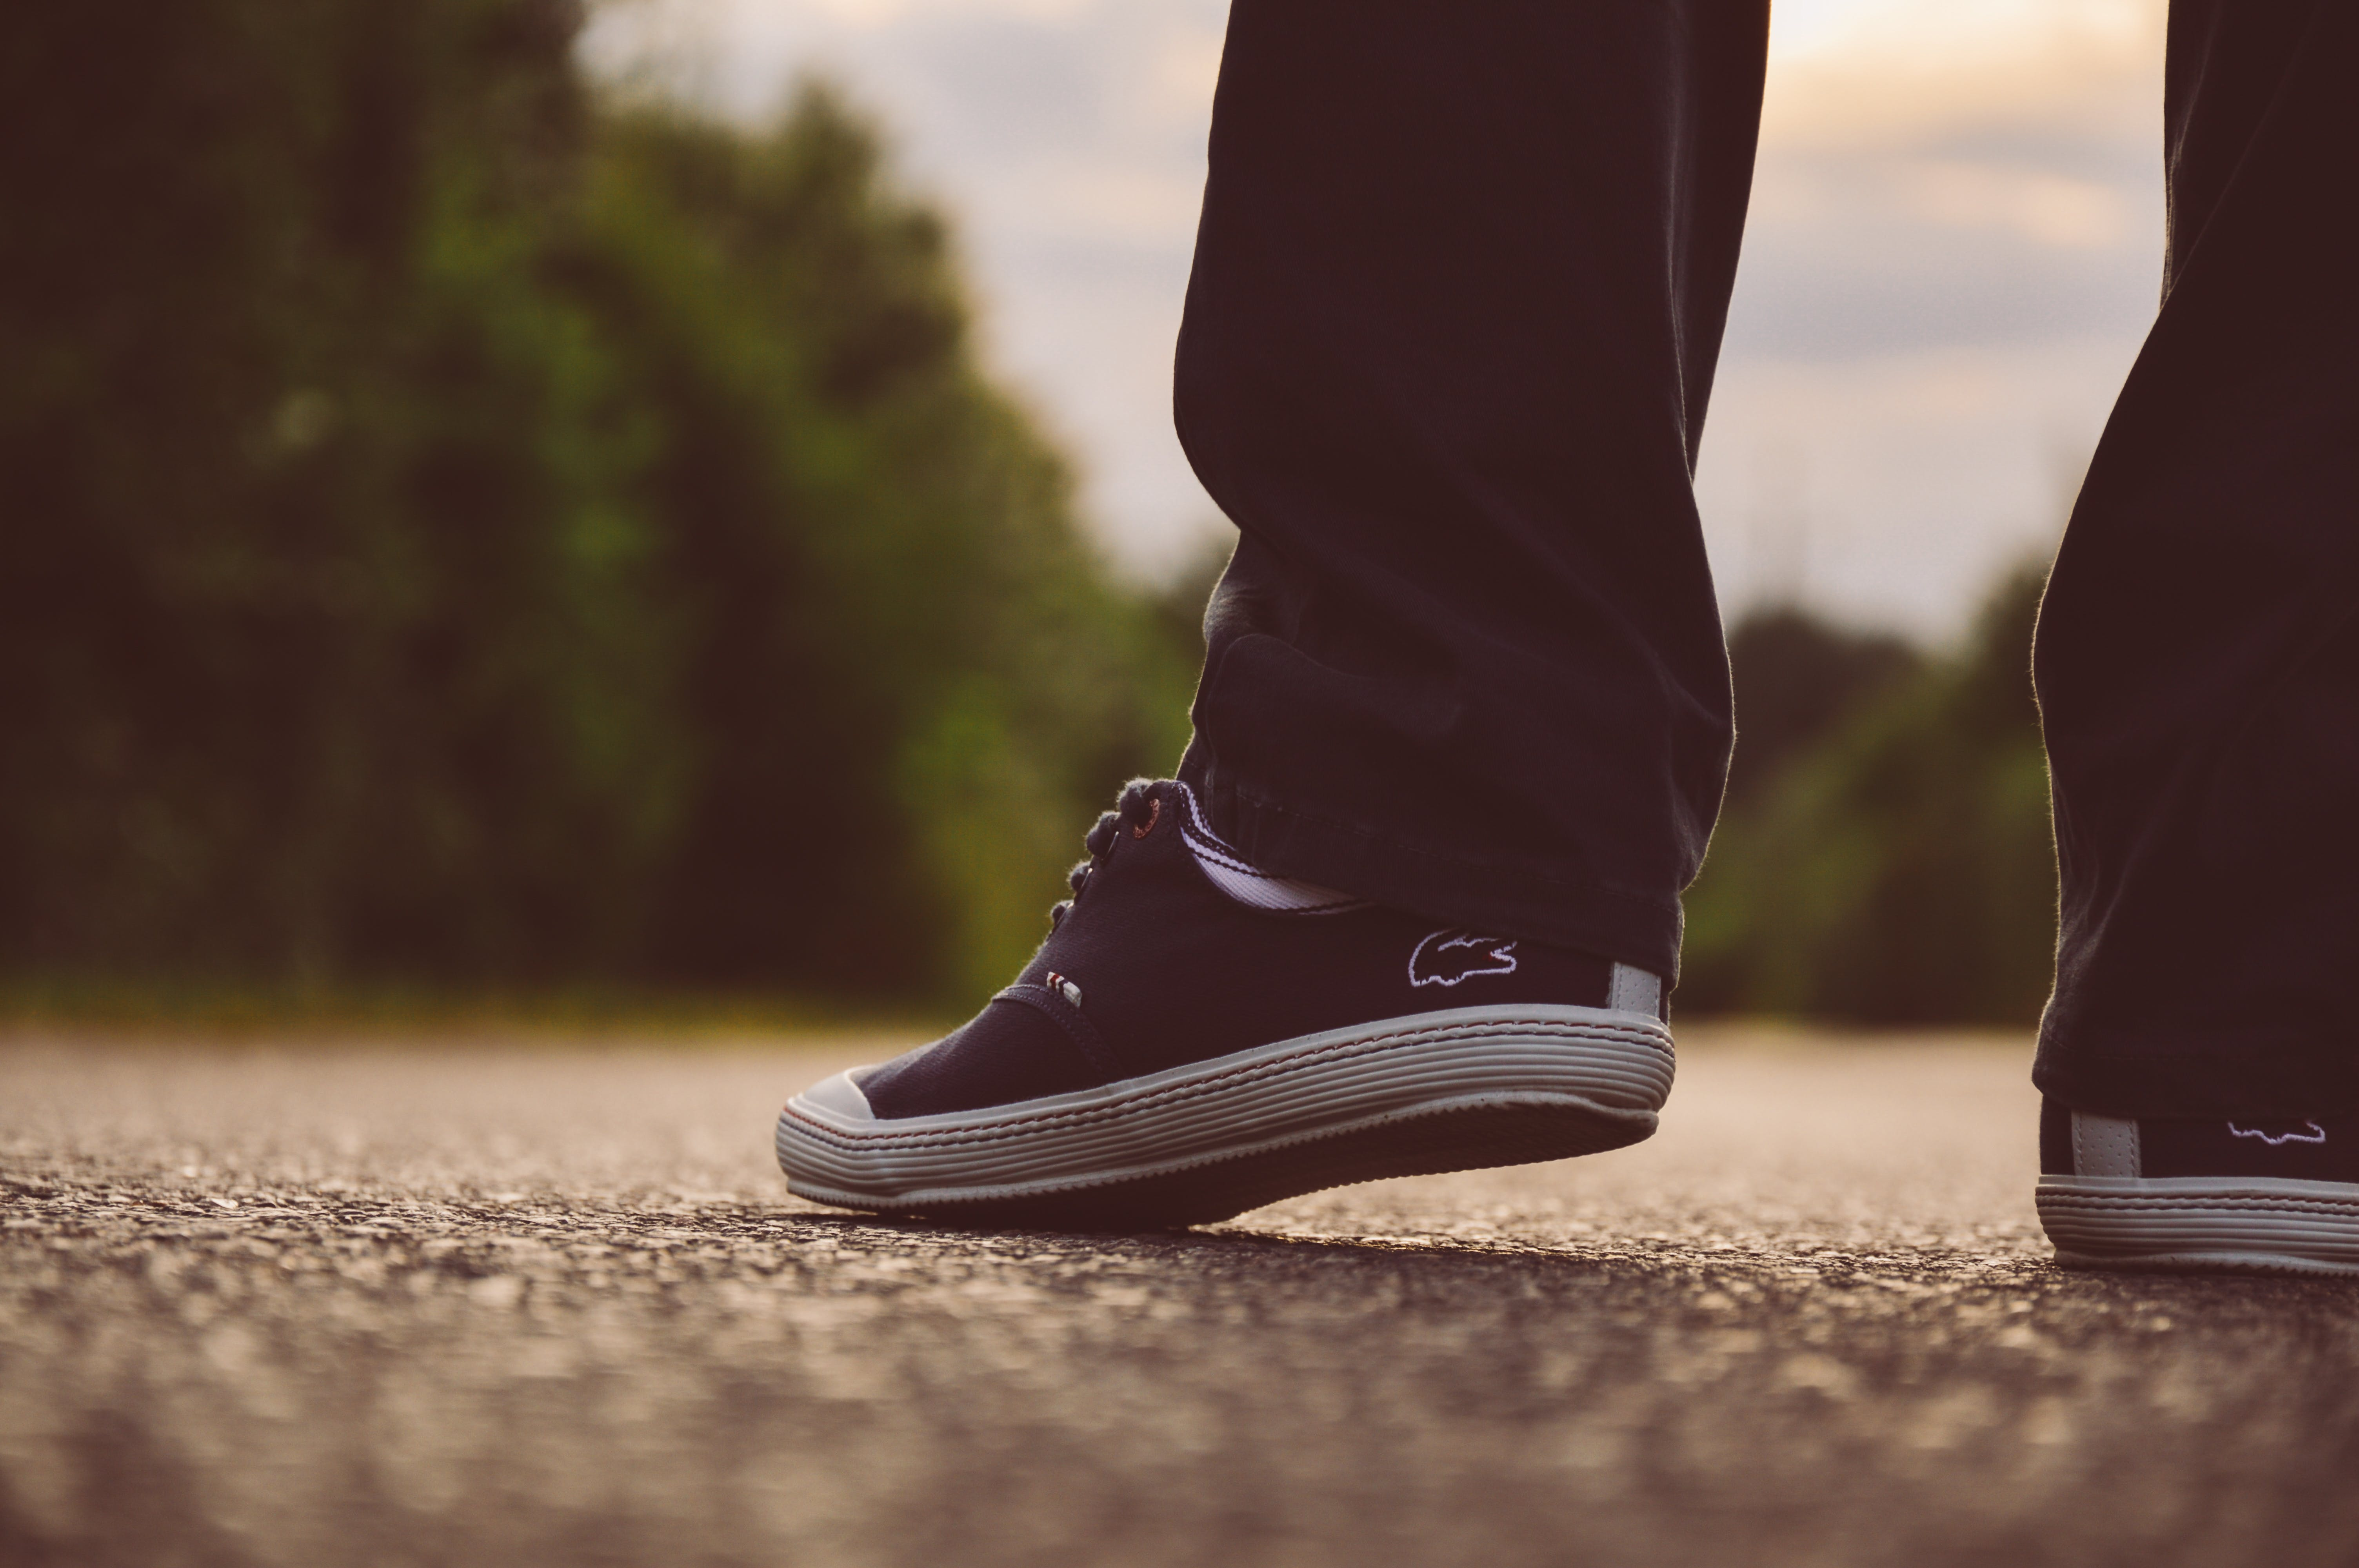 Person Wearing Black-and-white Lacoste Sneakers on Gray Concrete Road